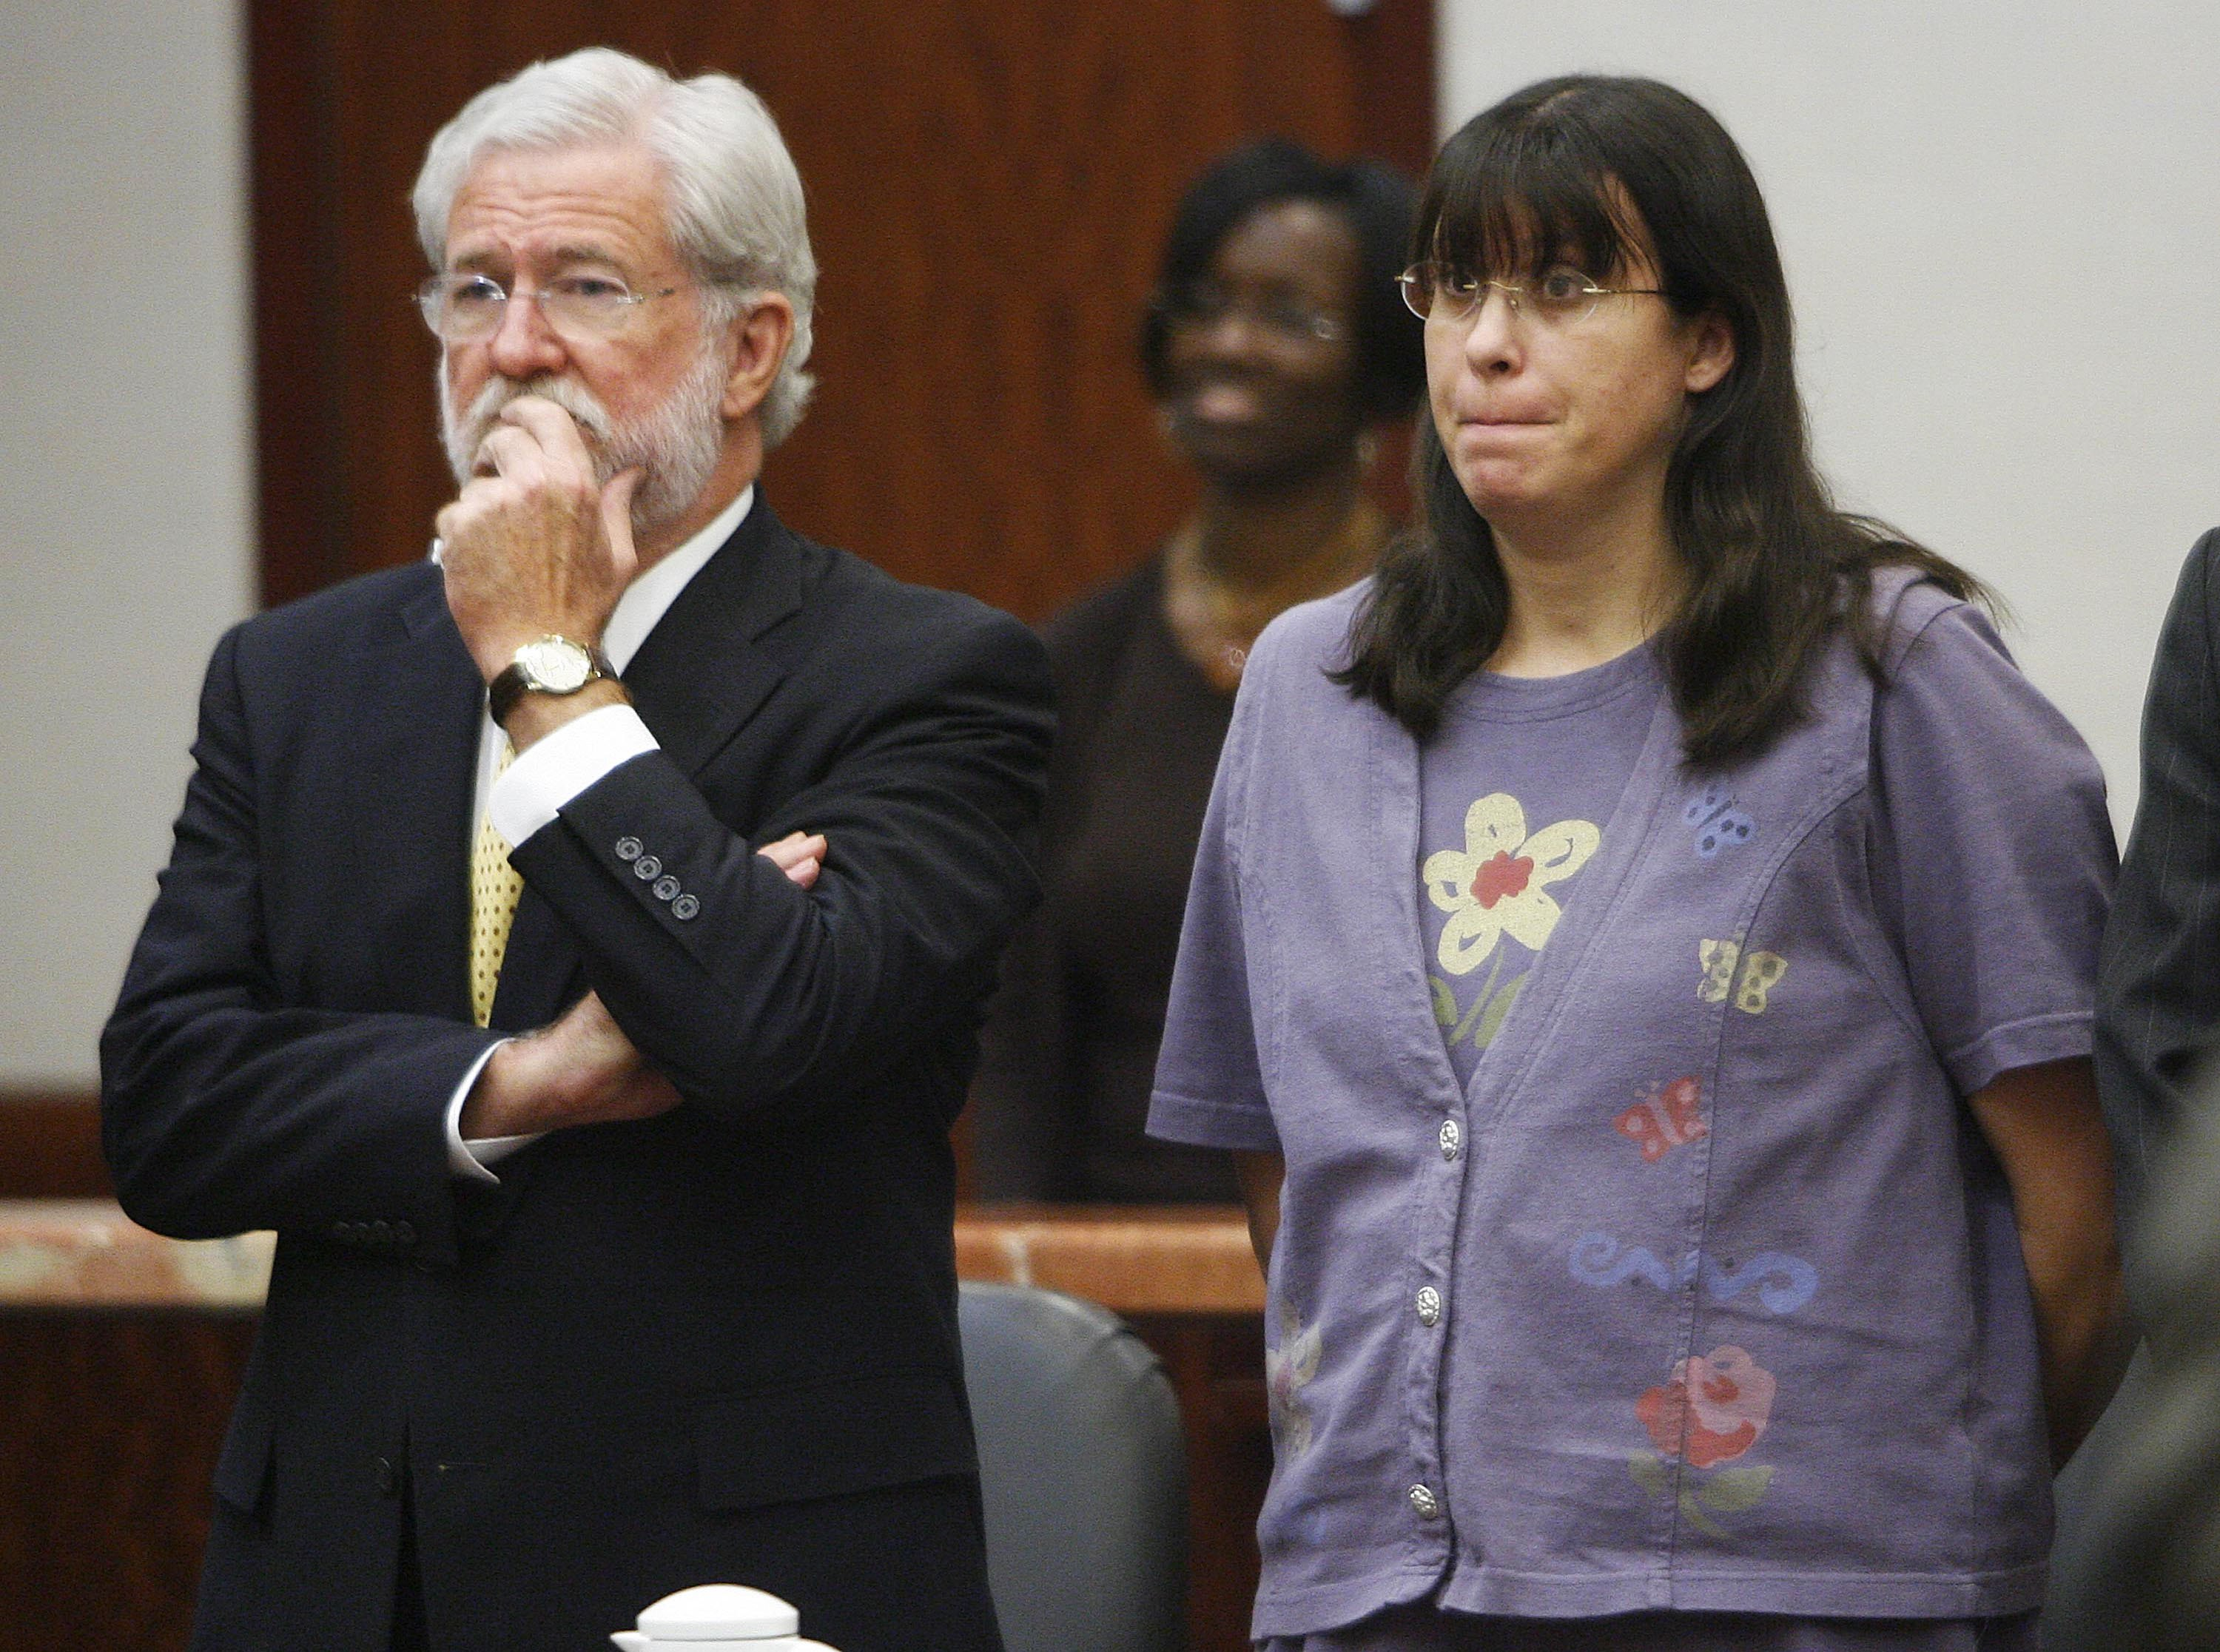 Andrea Yates stands with her attorney George Parnham. (Getty)